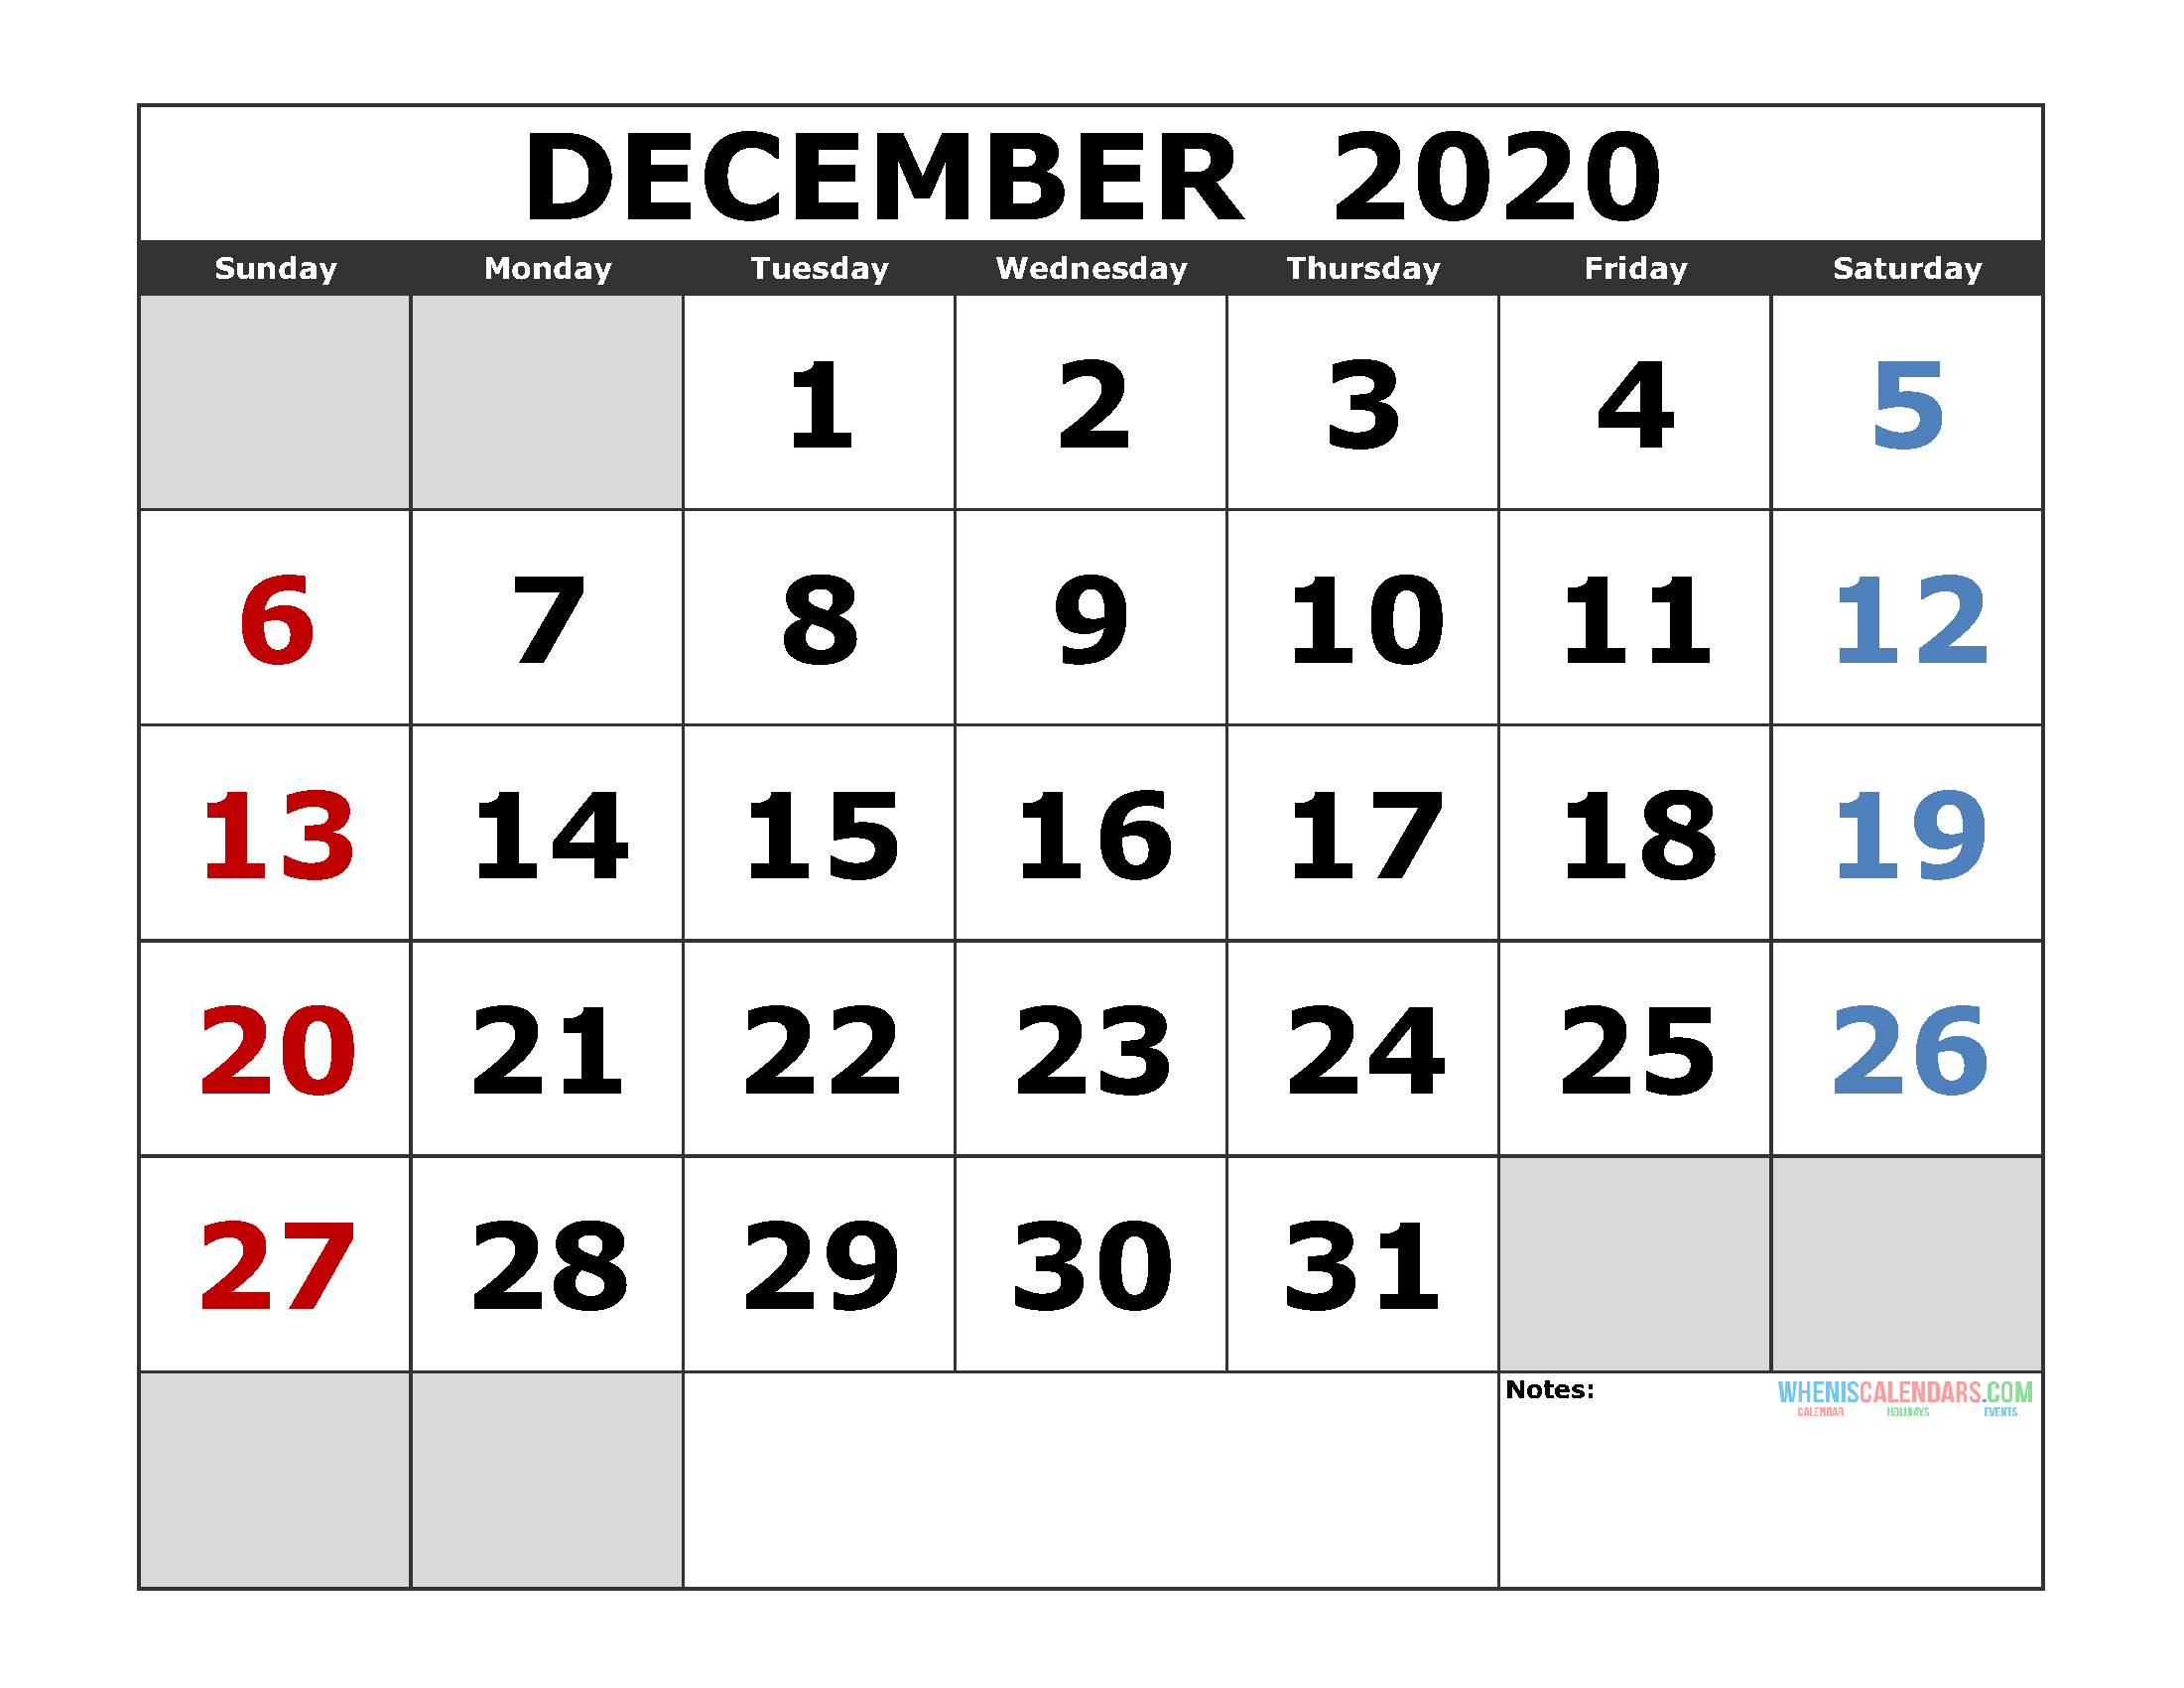 December 2020 Printable Calendar Template Excel Pdf Image Us